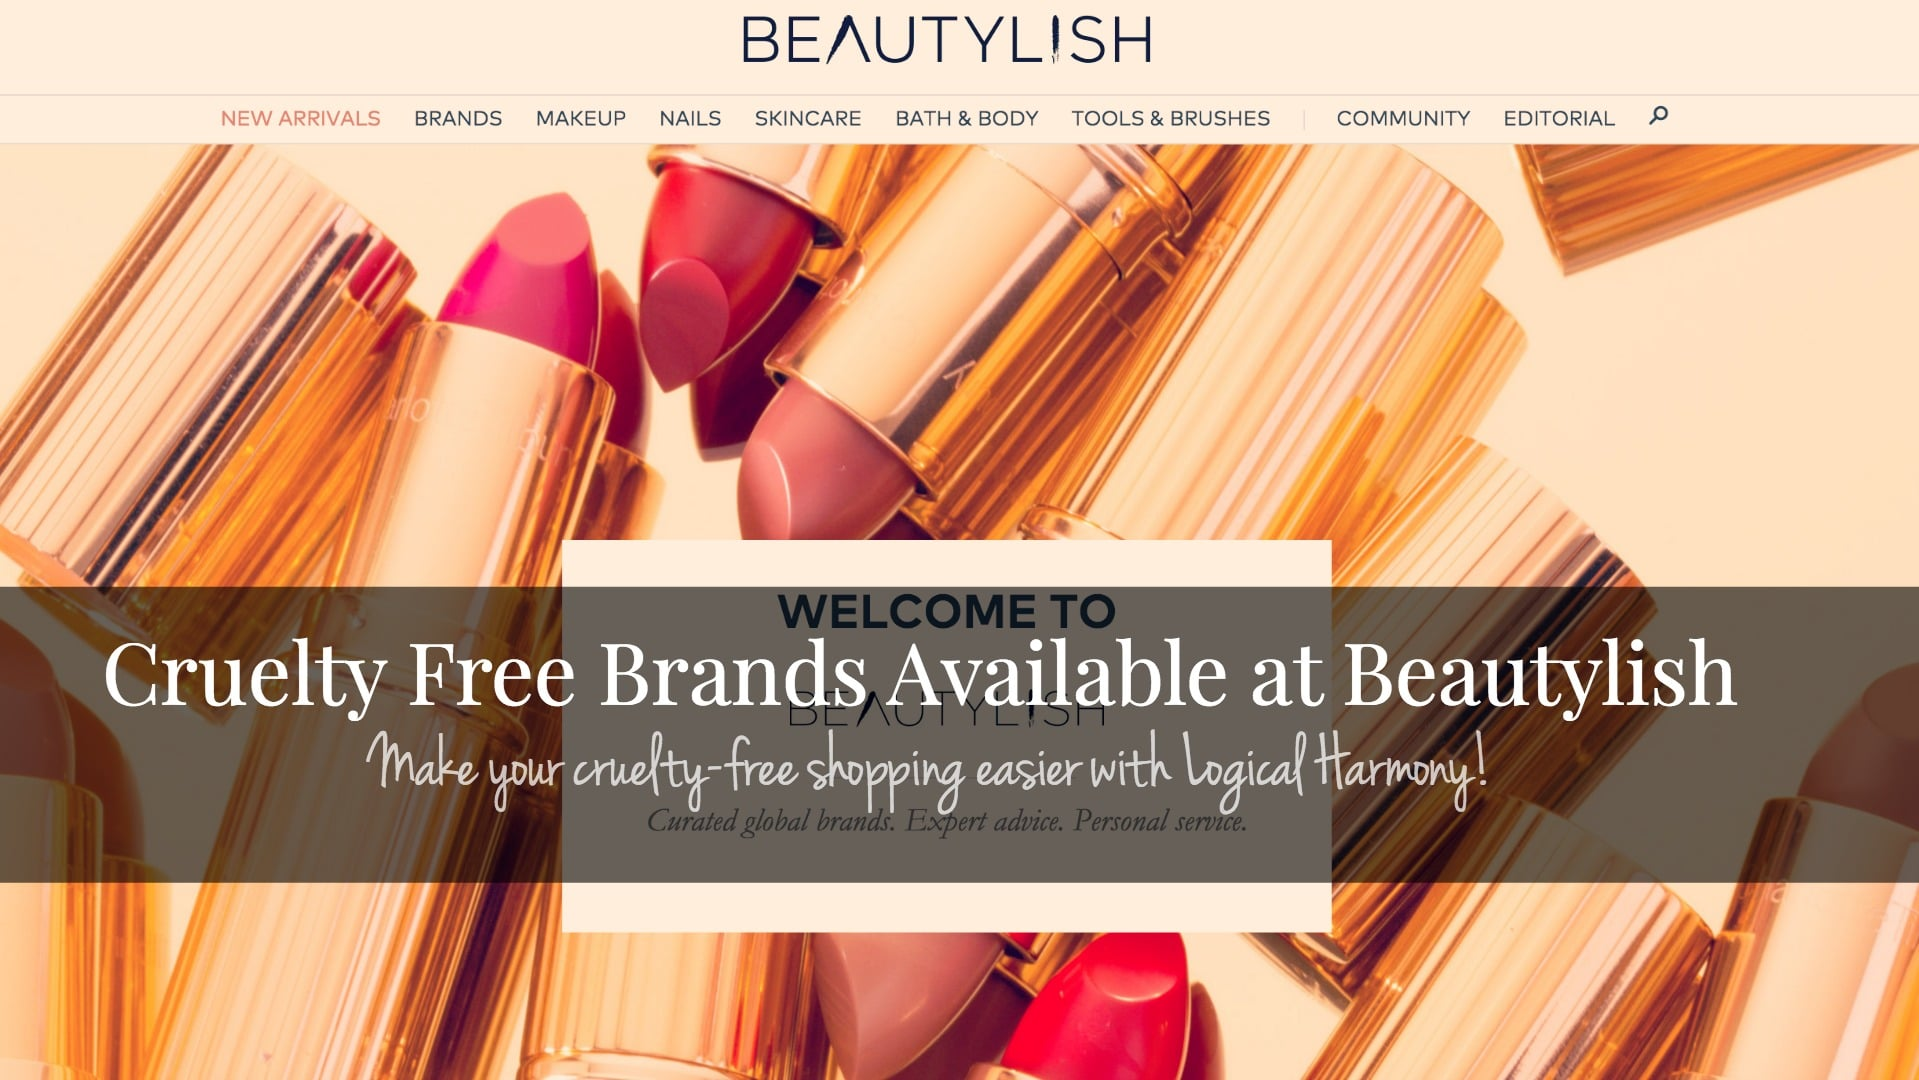 Cruelty Free Brands Available at Beautylish